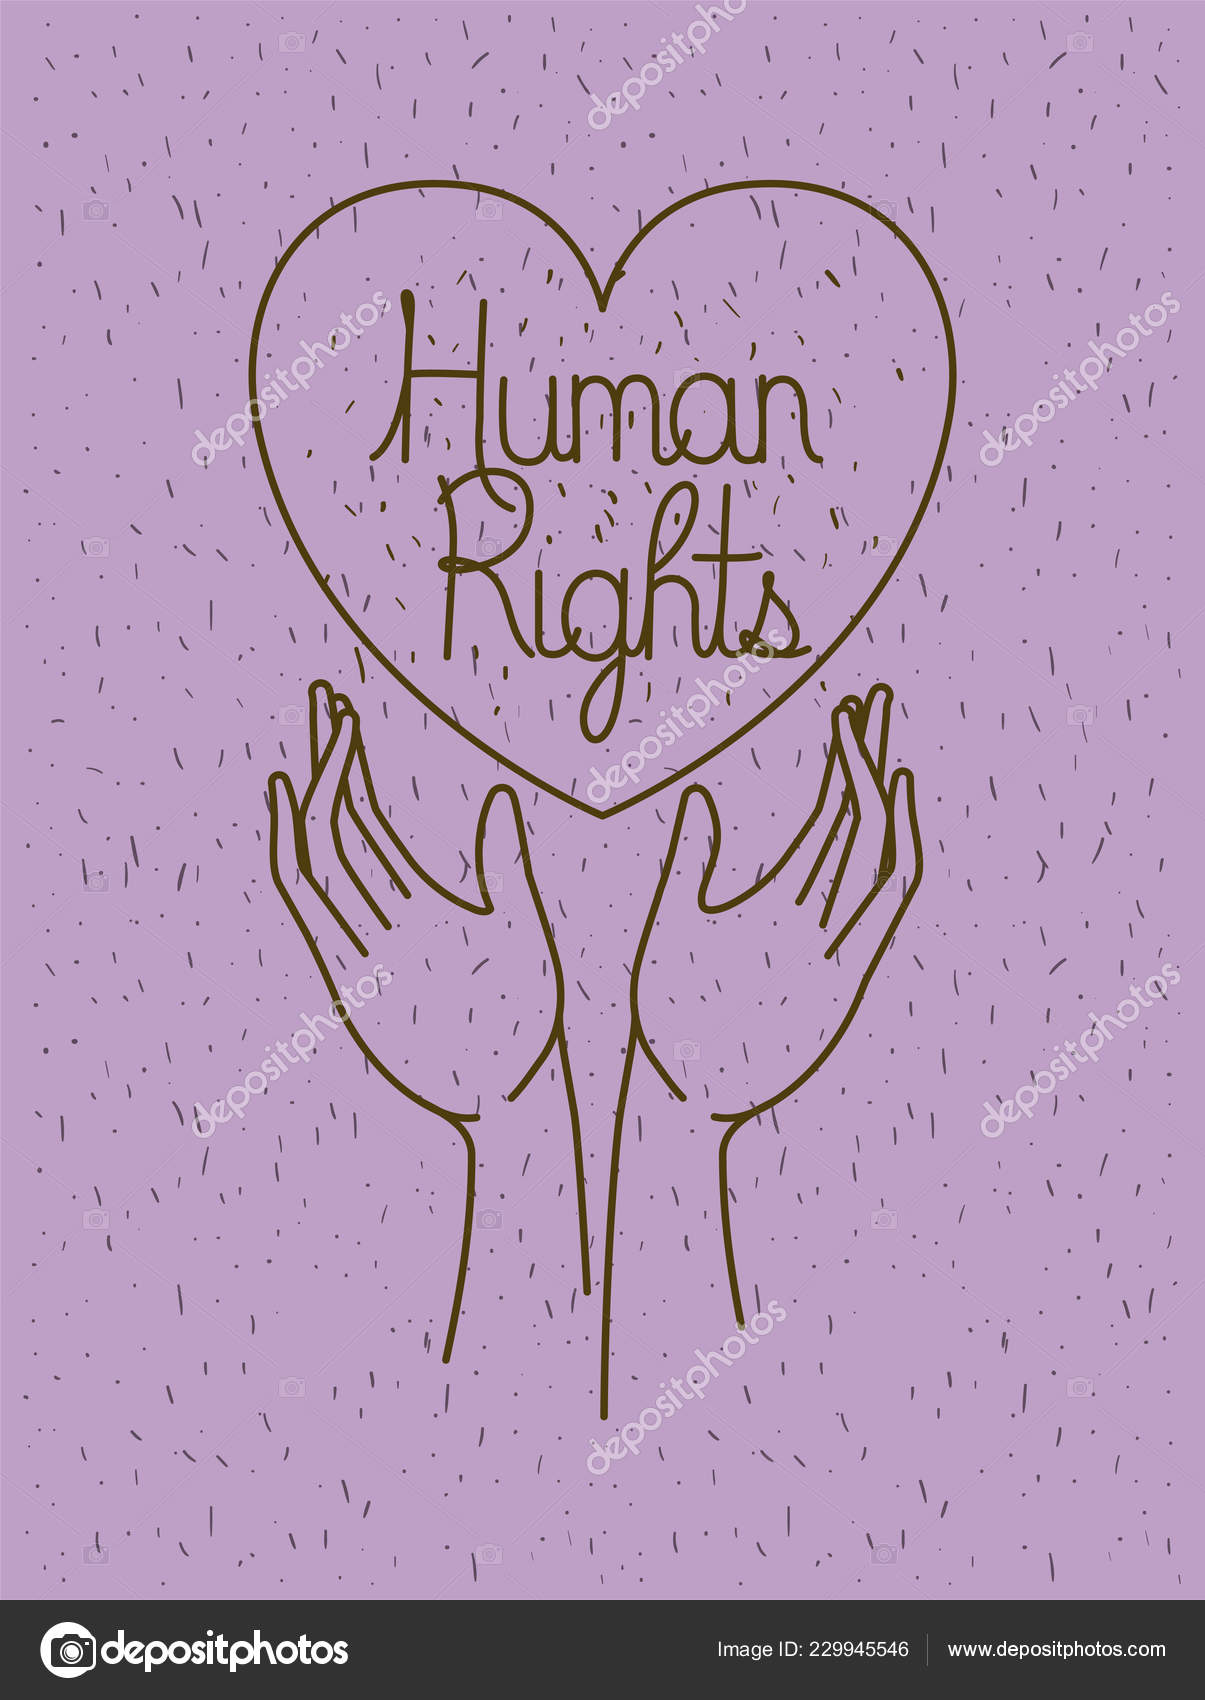 Hand With Heart Human Rights Drawns Stock Vector C Grgroupstock